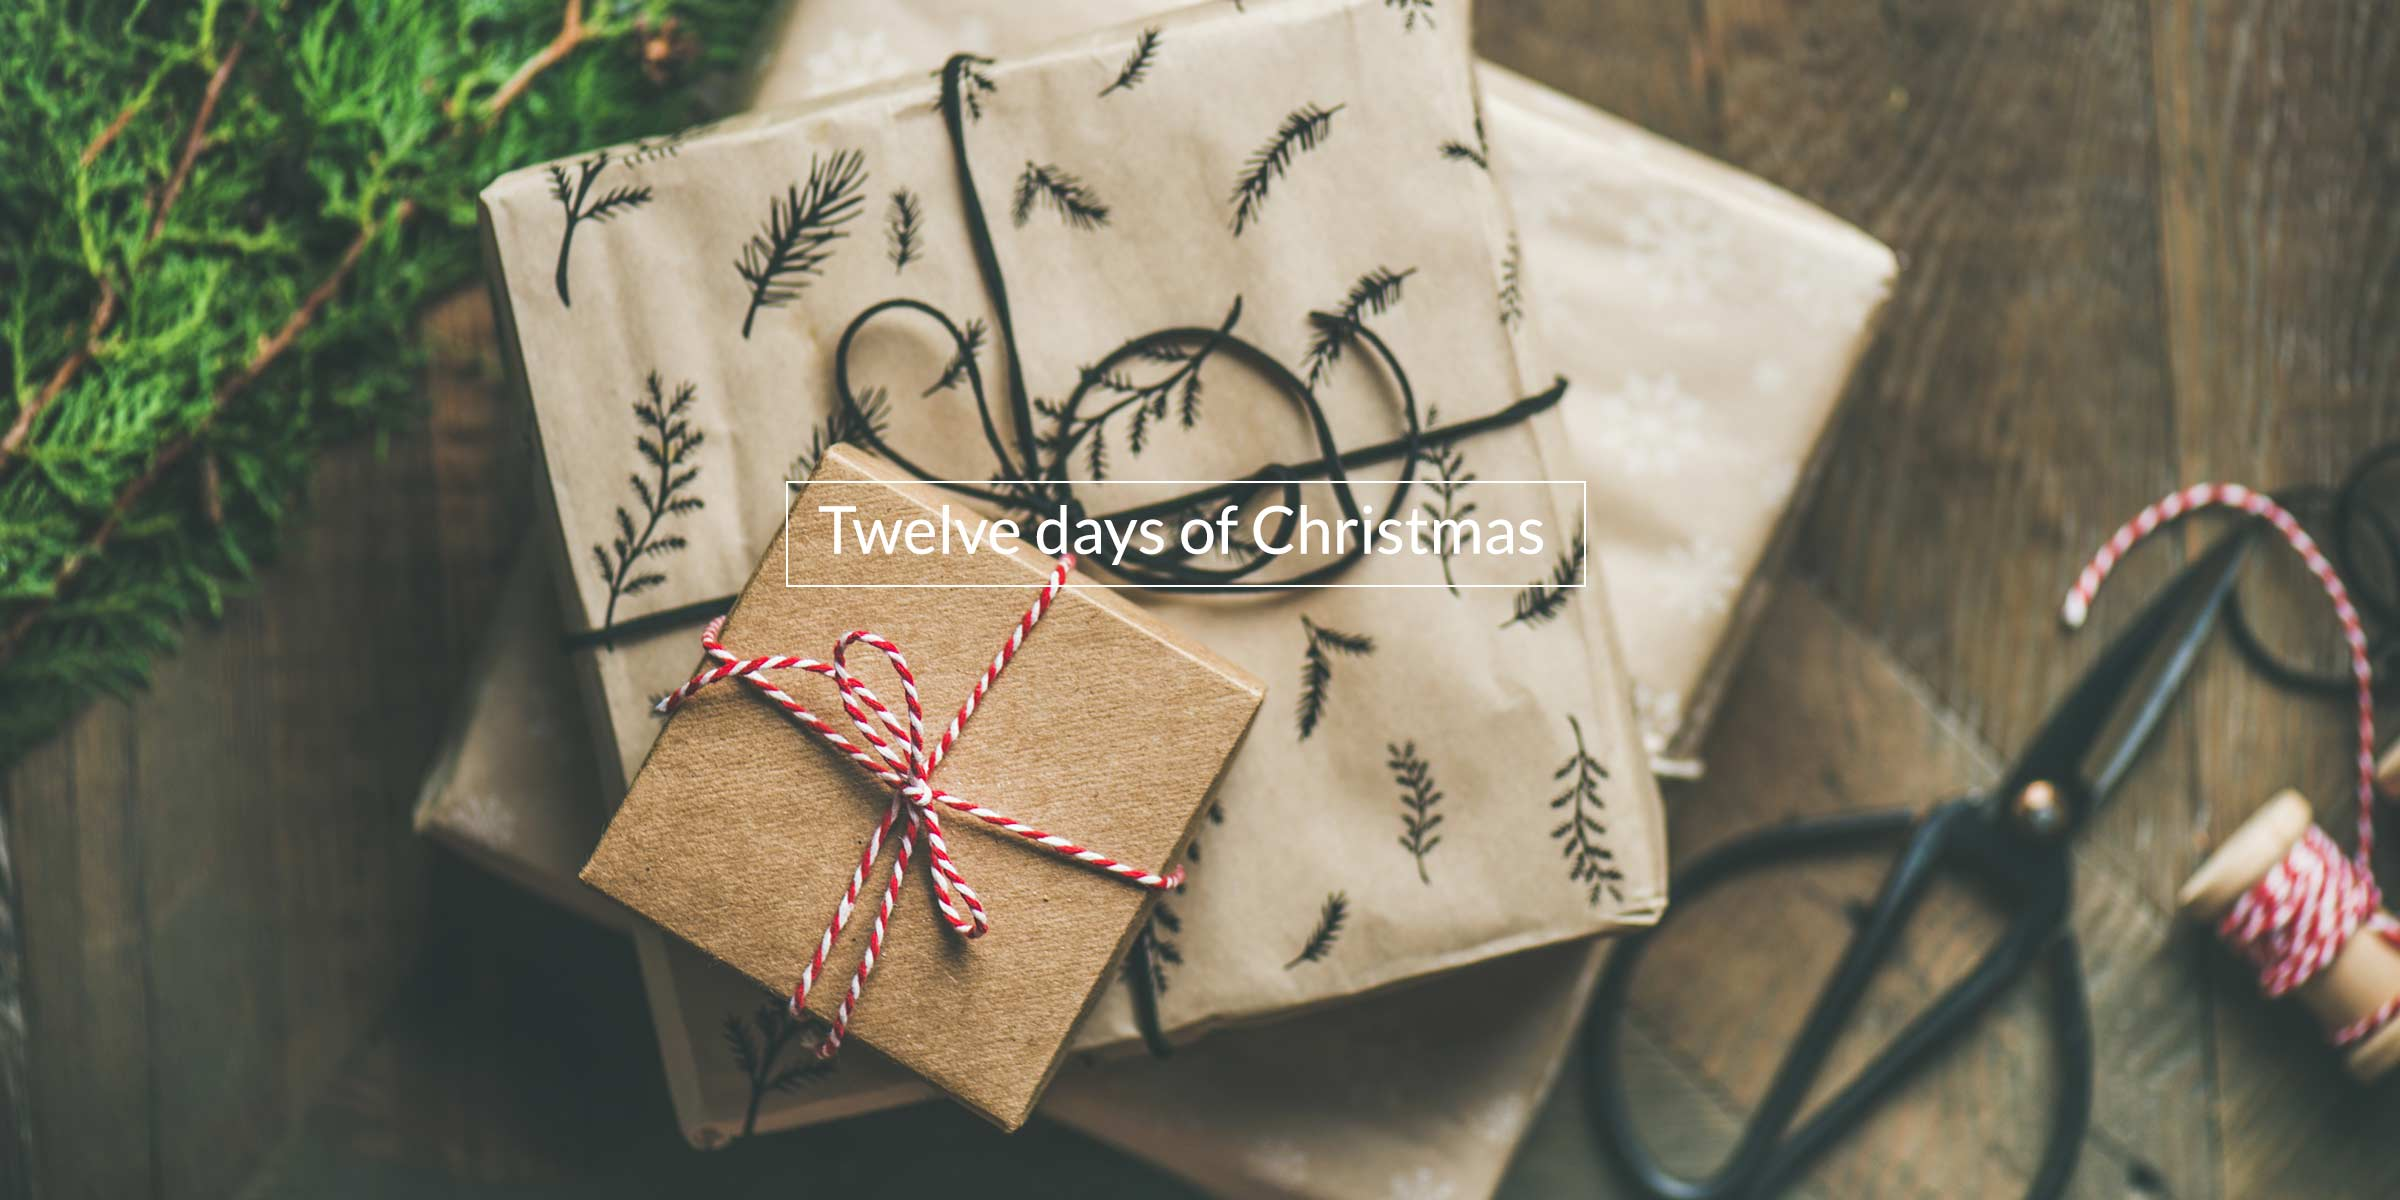 Twelve days of Christmas; twelve days of emotional intelligence